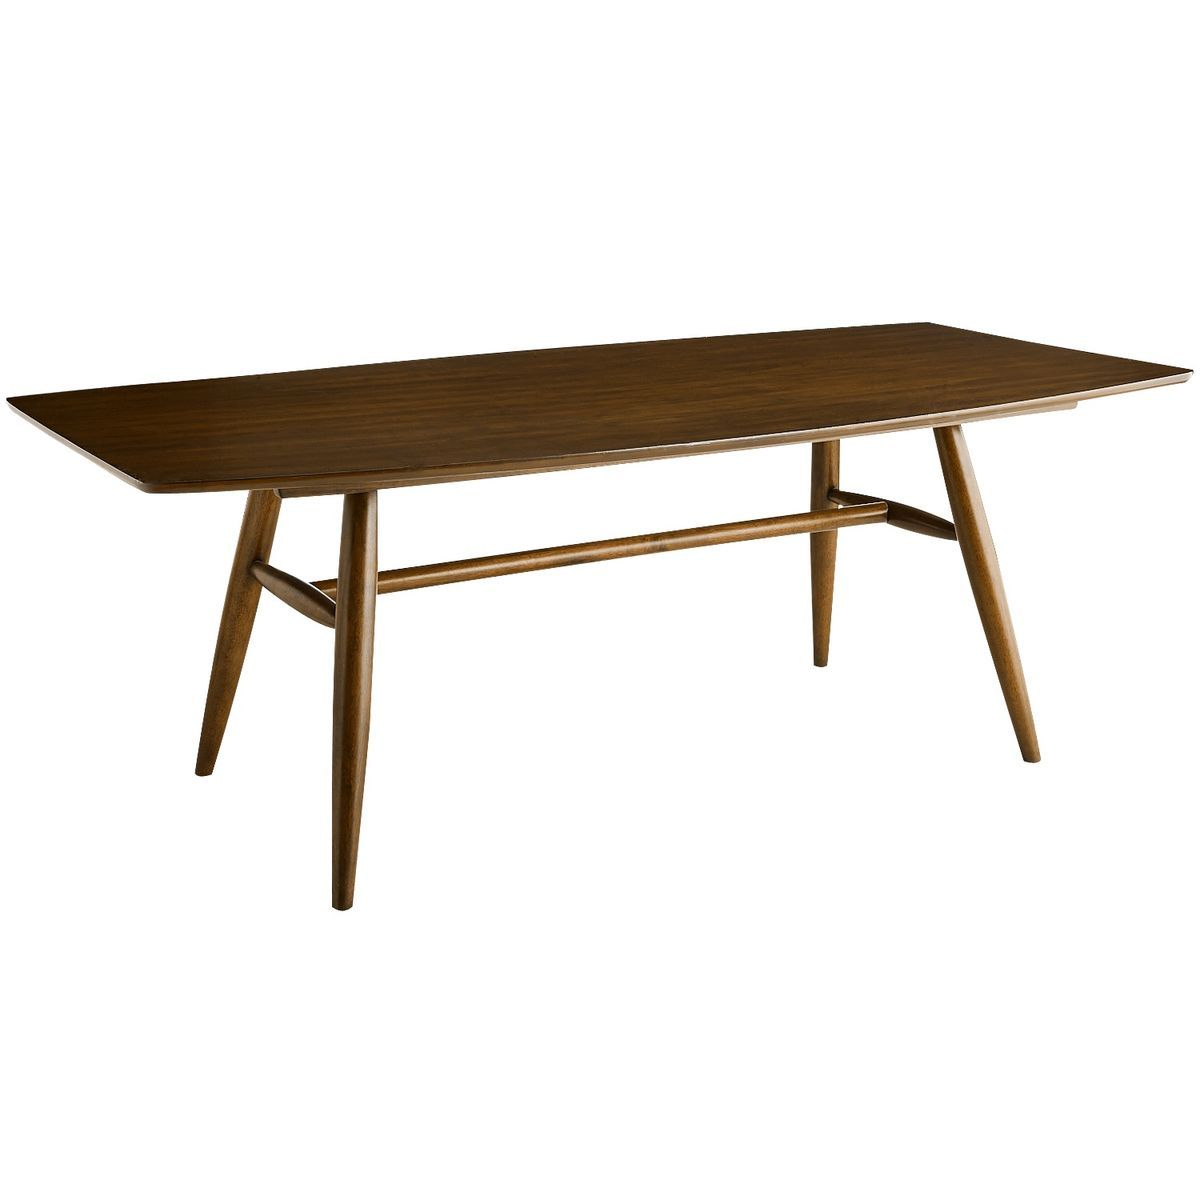 Pinvanessa Weidner On Home {Dining} | Dining Table In Inside Most Popular Kipling Rectangular Dining Tables (Image 20 of 25)